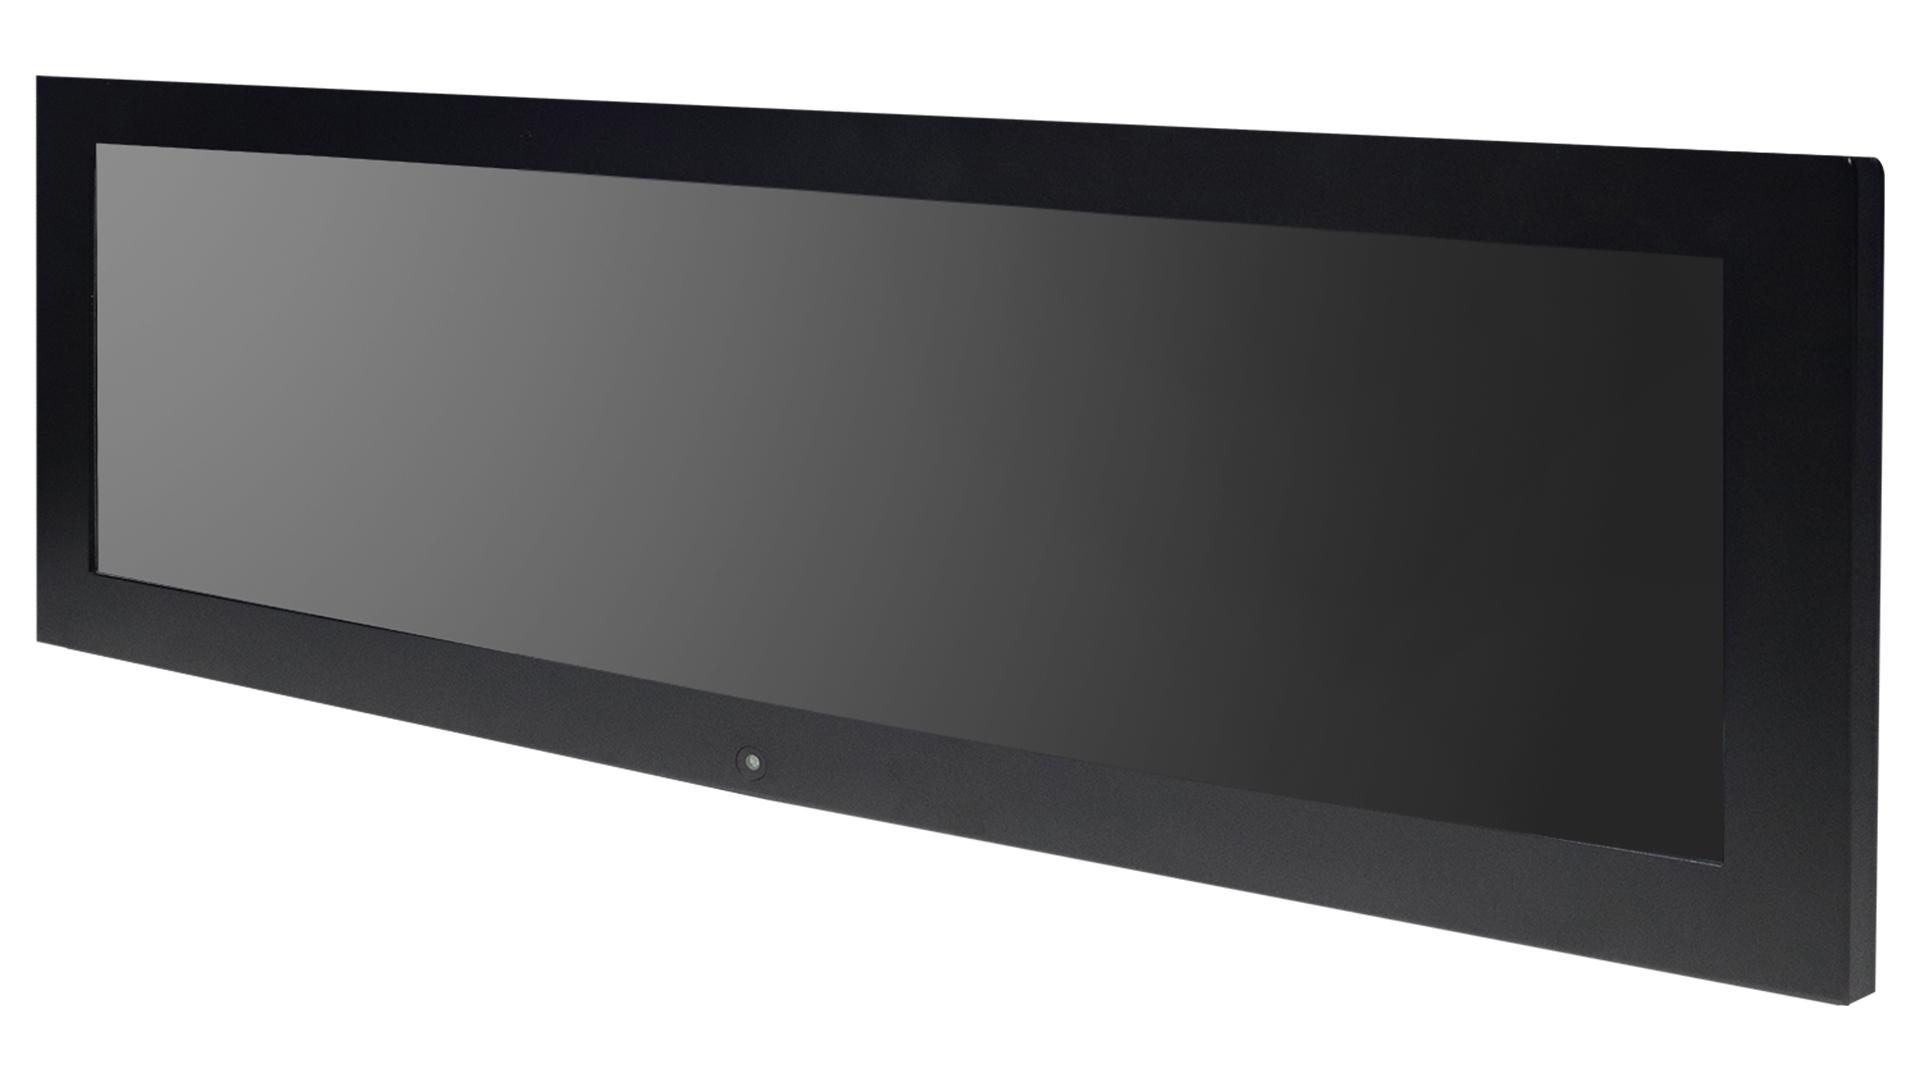 "EN50155 Certified AIO 28.6"" Bar-Type Panel PC / IBASE Technology Inc."